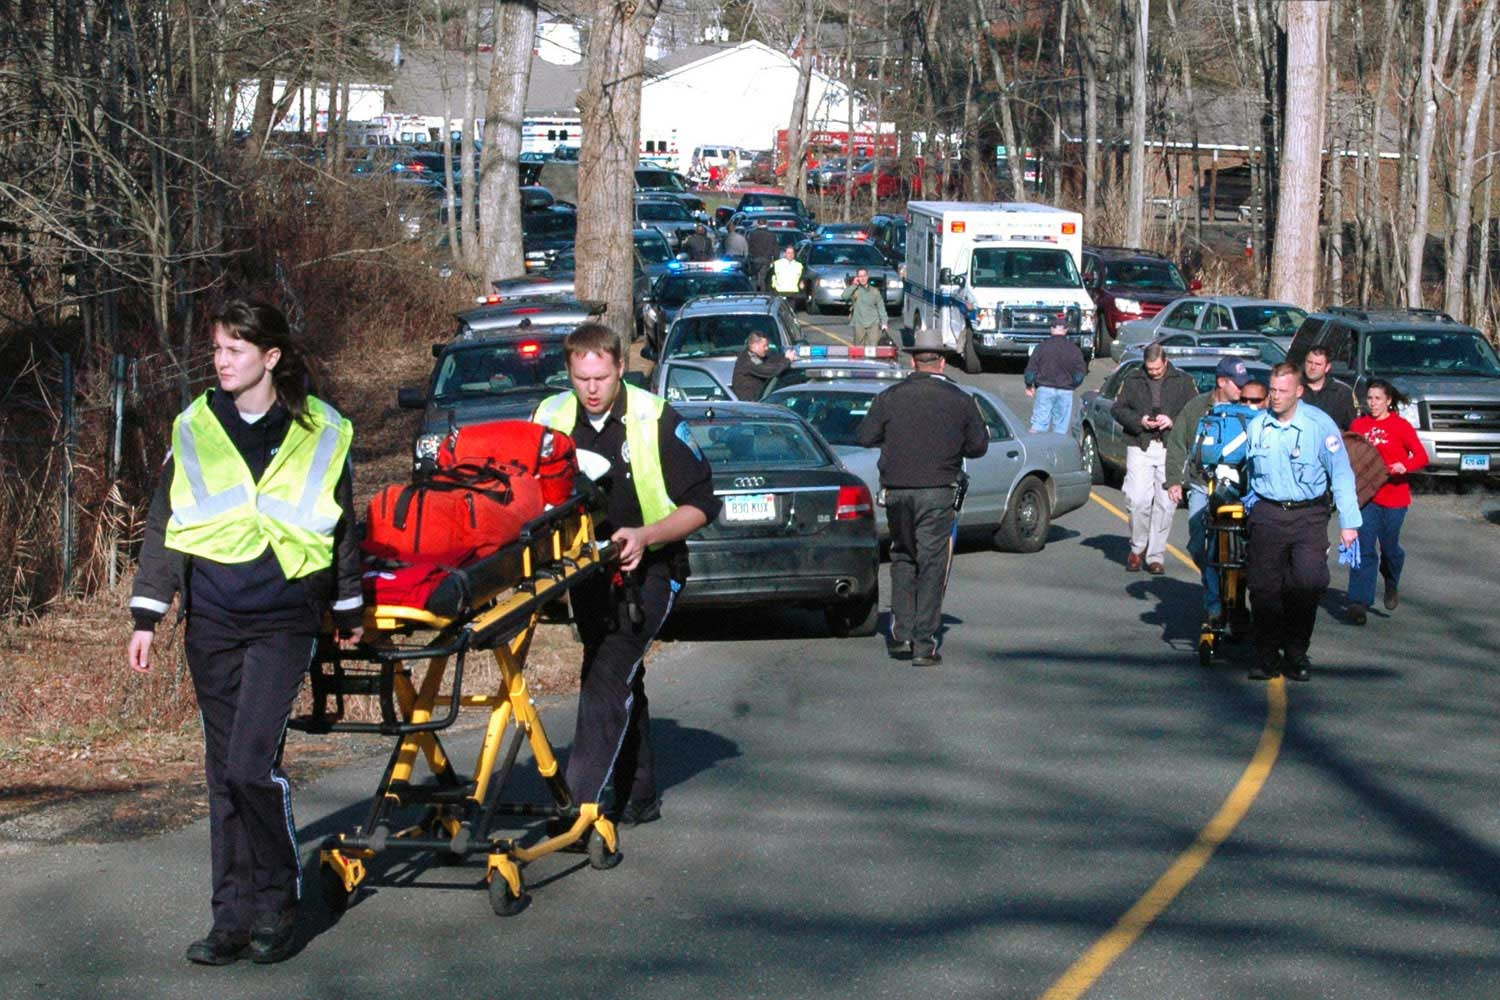 Paramedics push stretchers toward Sandy Hook Elementary School in Newtown, Conn., where 20-year-old Adam Lanza opened fire, killing 26 people, including 20 children.